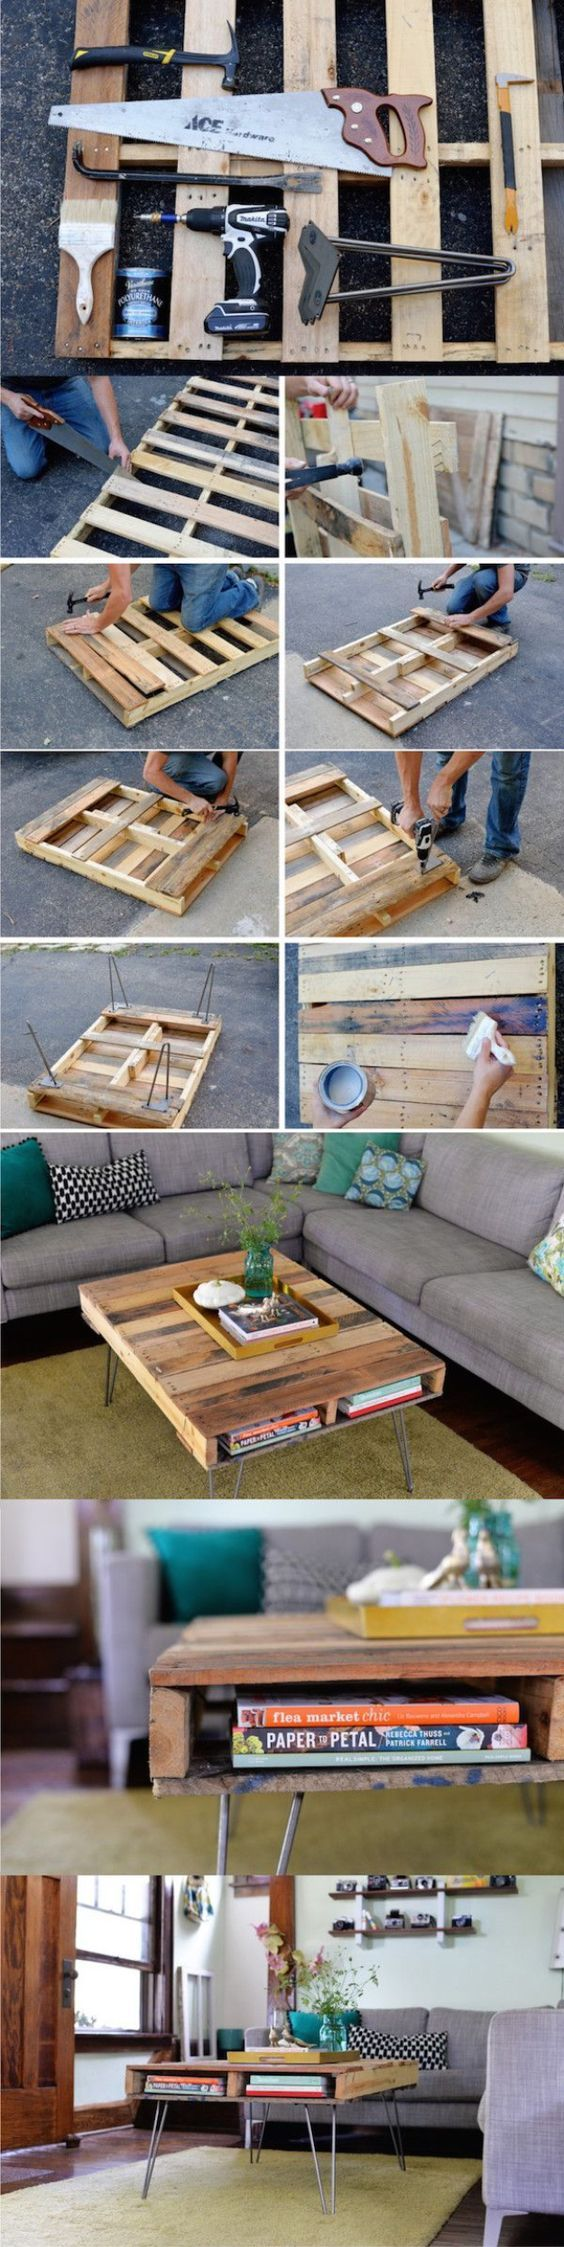 best pallet magic things to do with pallets images on